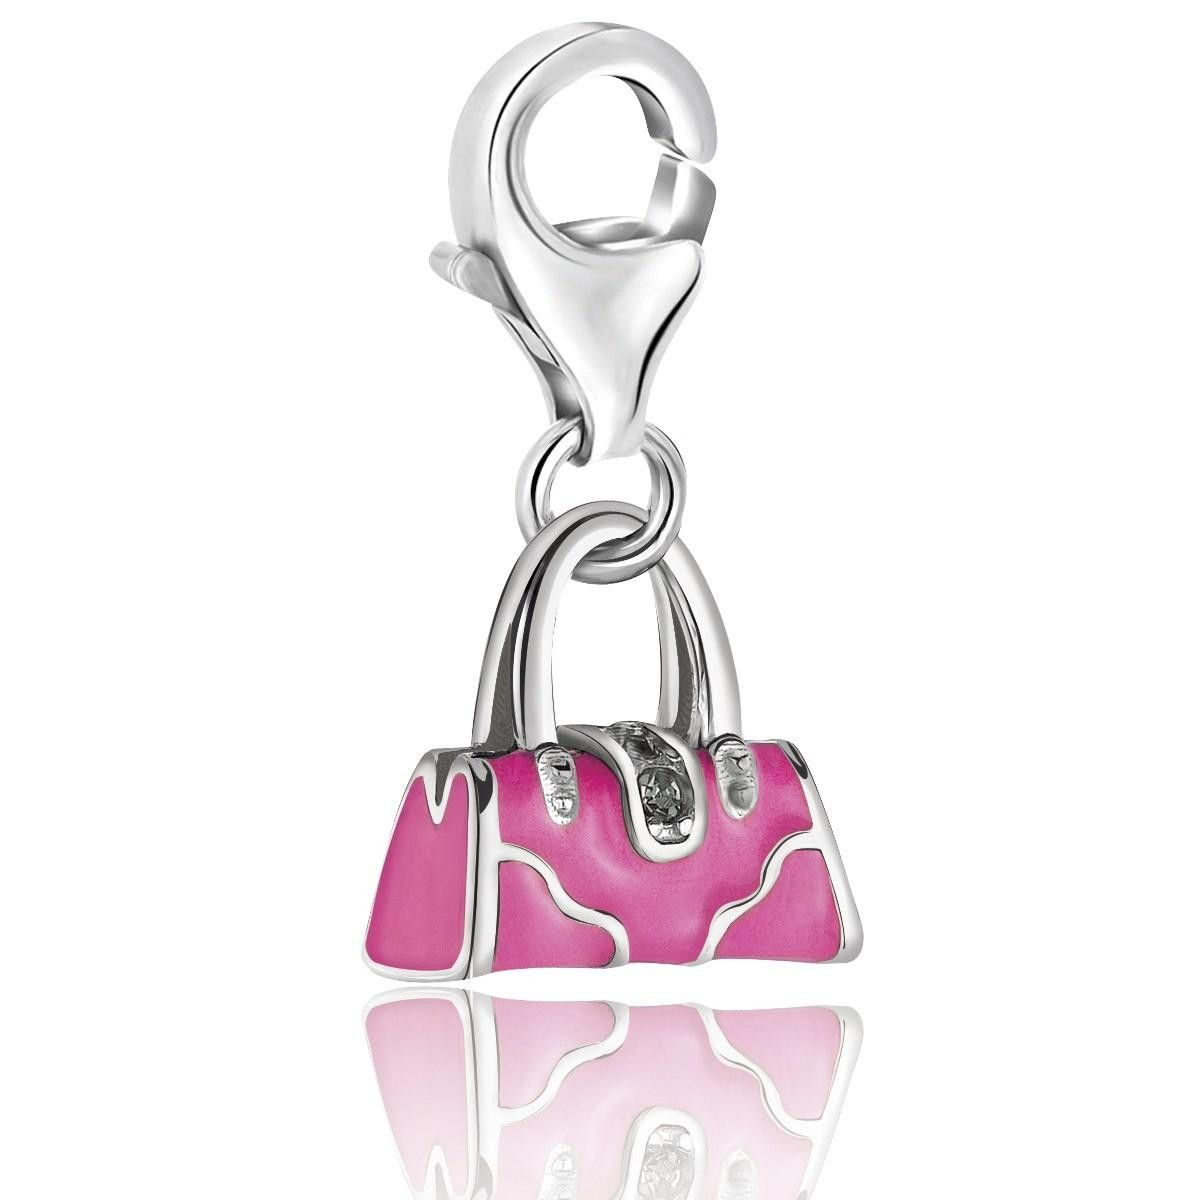 Sterling Silver Pink Enameled Handbag Charm With Crystal Lock Detailing